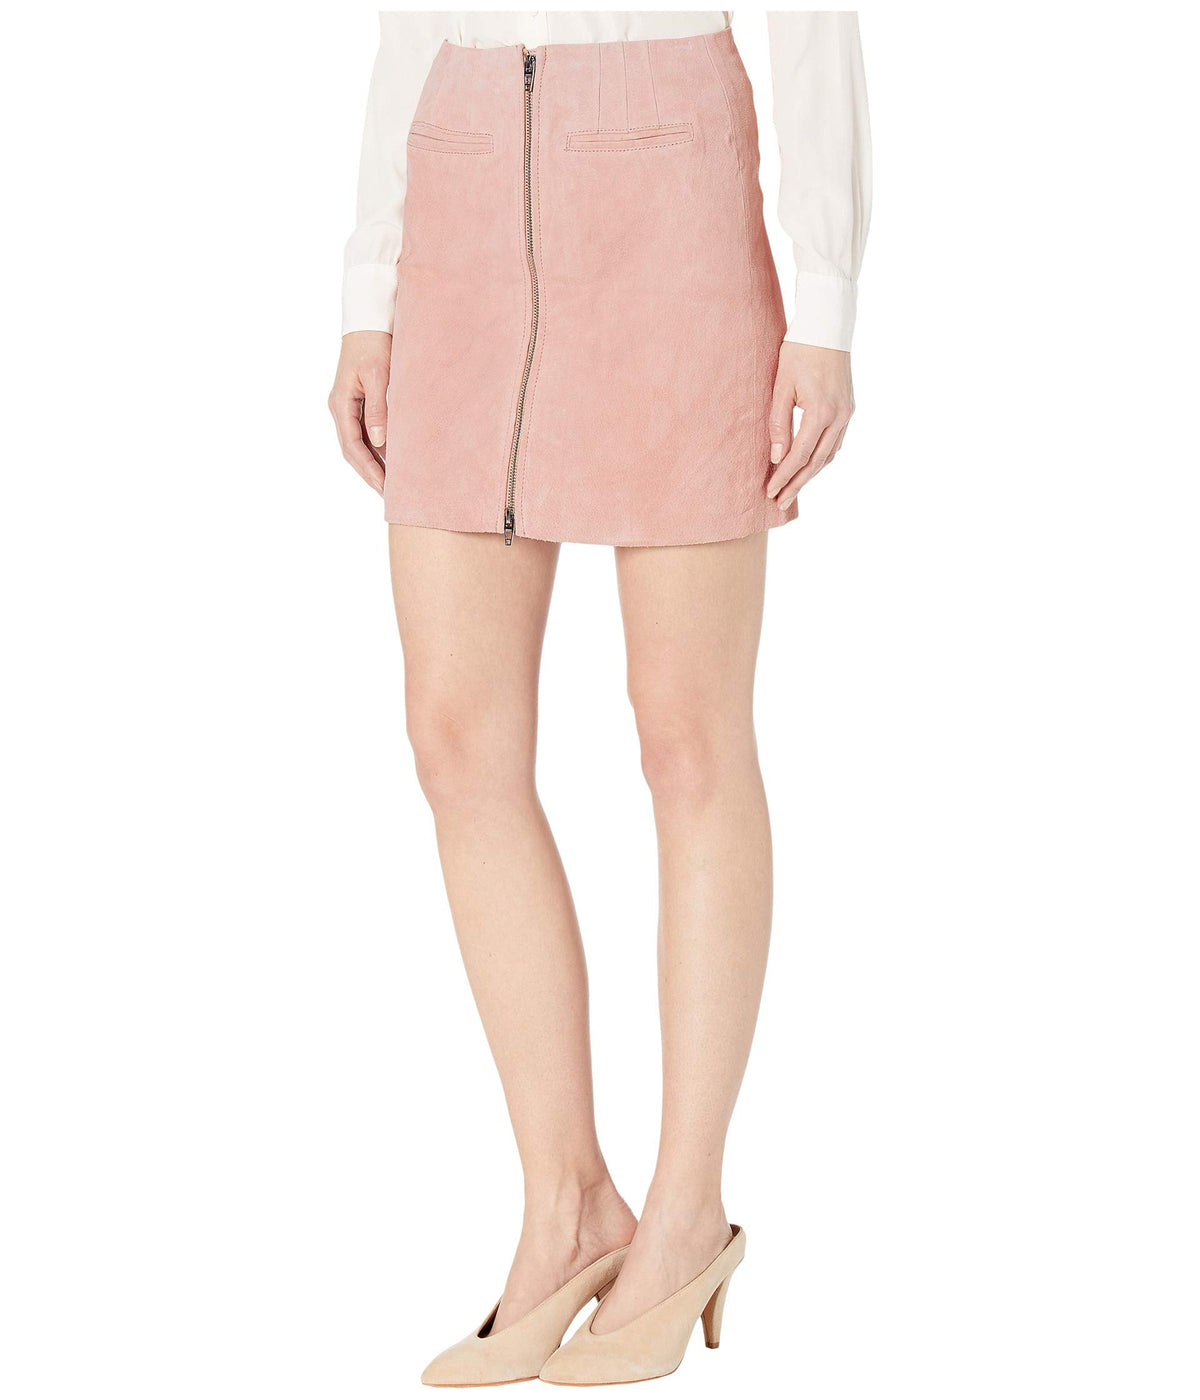 Real Suede Skirt with Zipper Detail in Pink Pearl